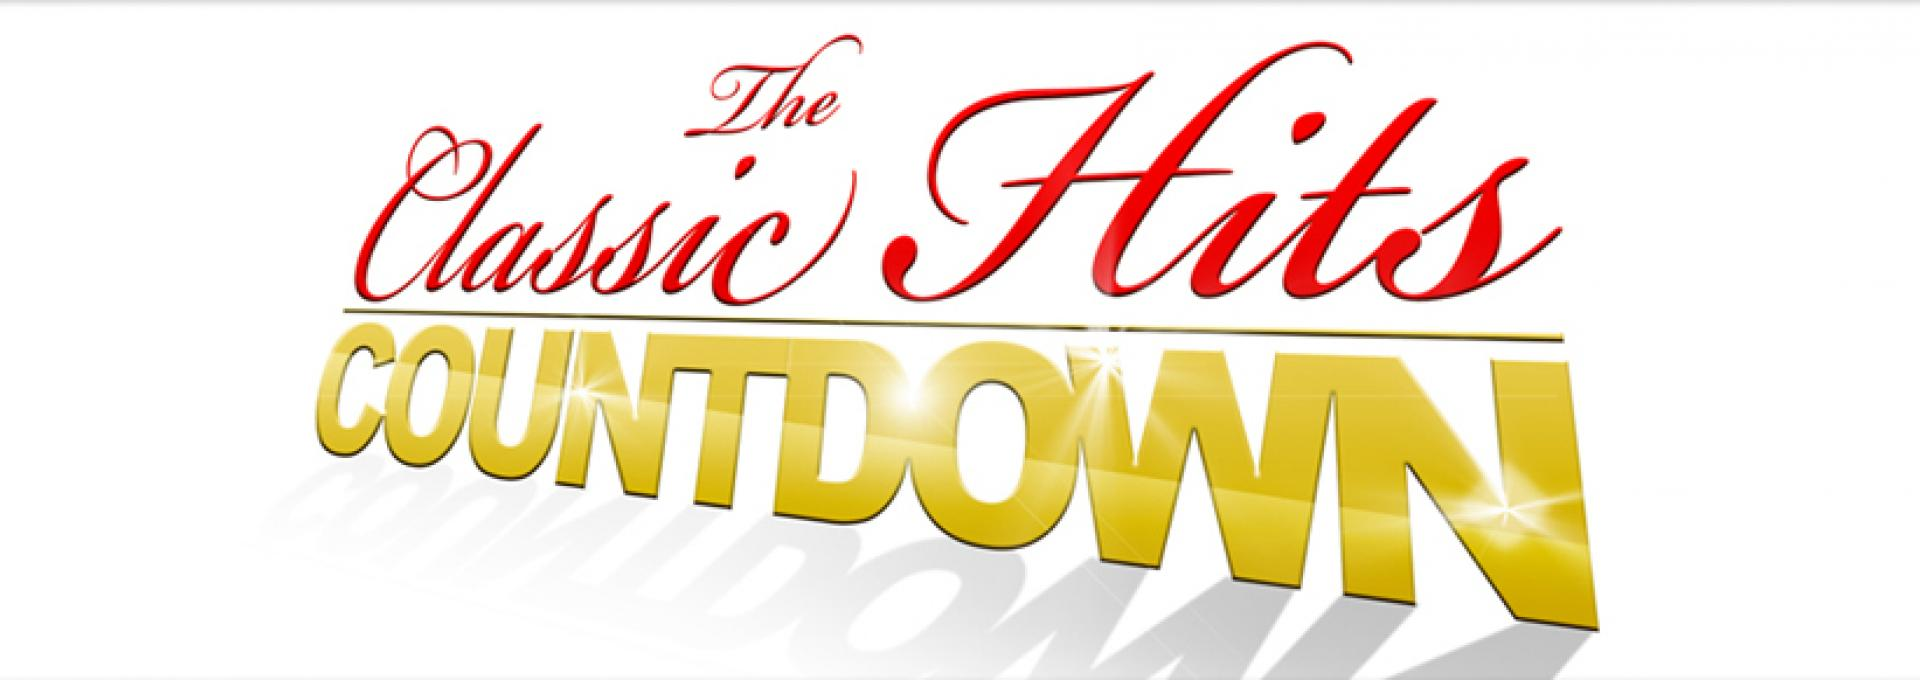 THE CLASSIC HITS COUNTDOWN with Tom Kent hero